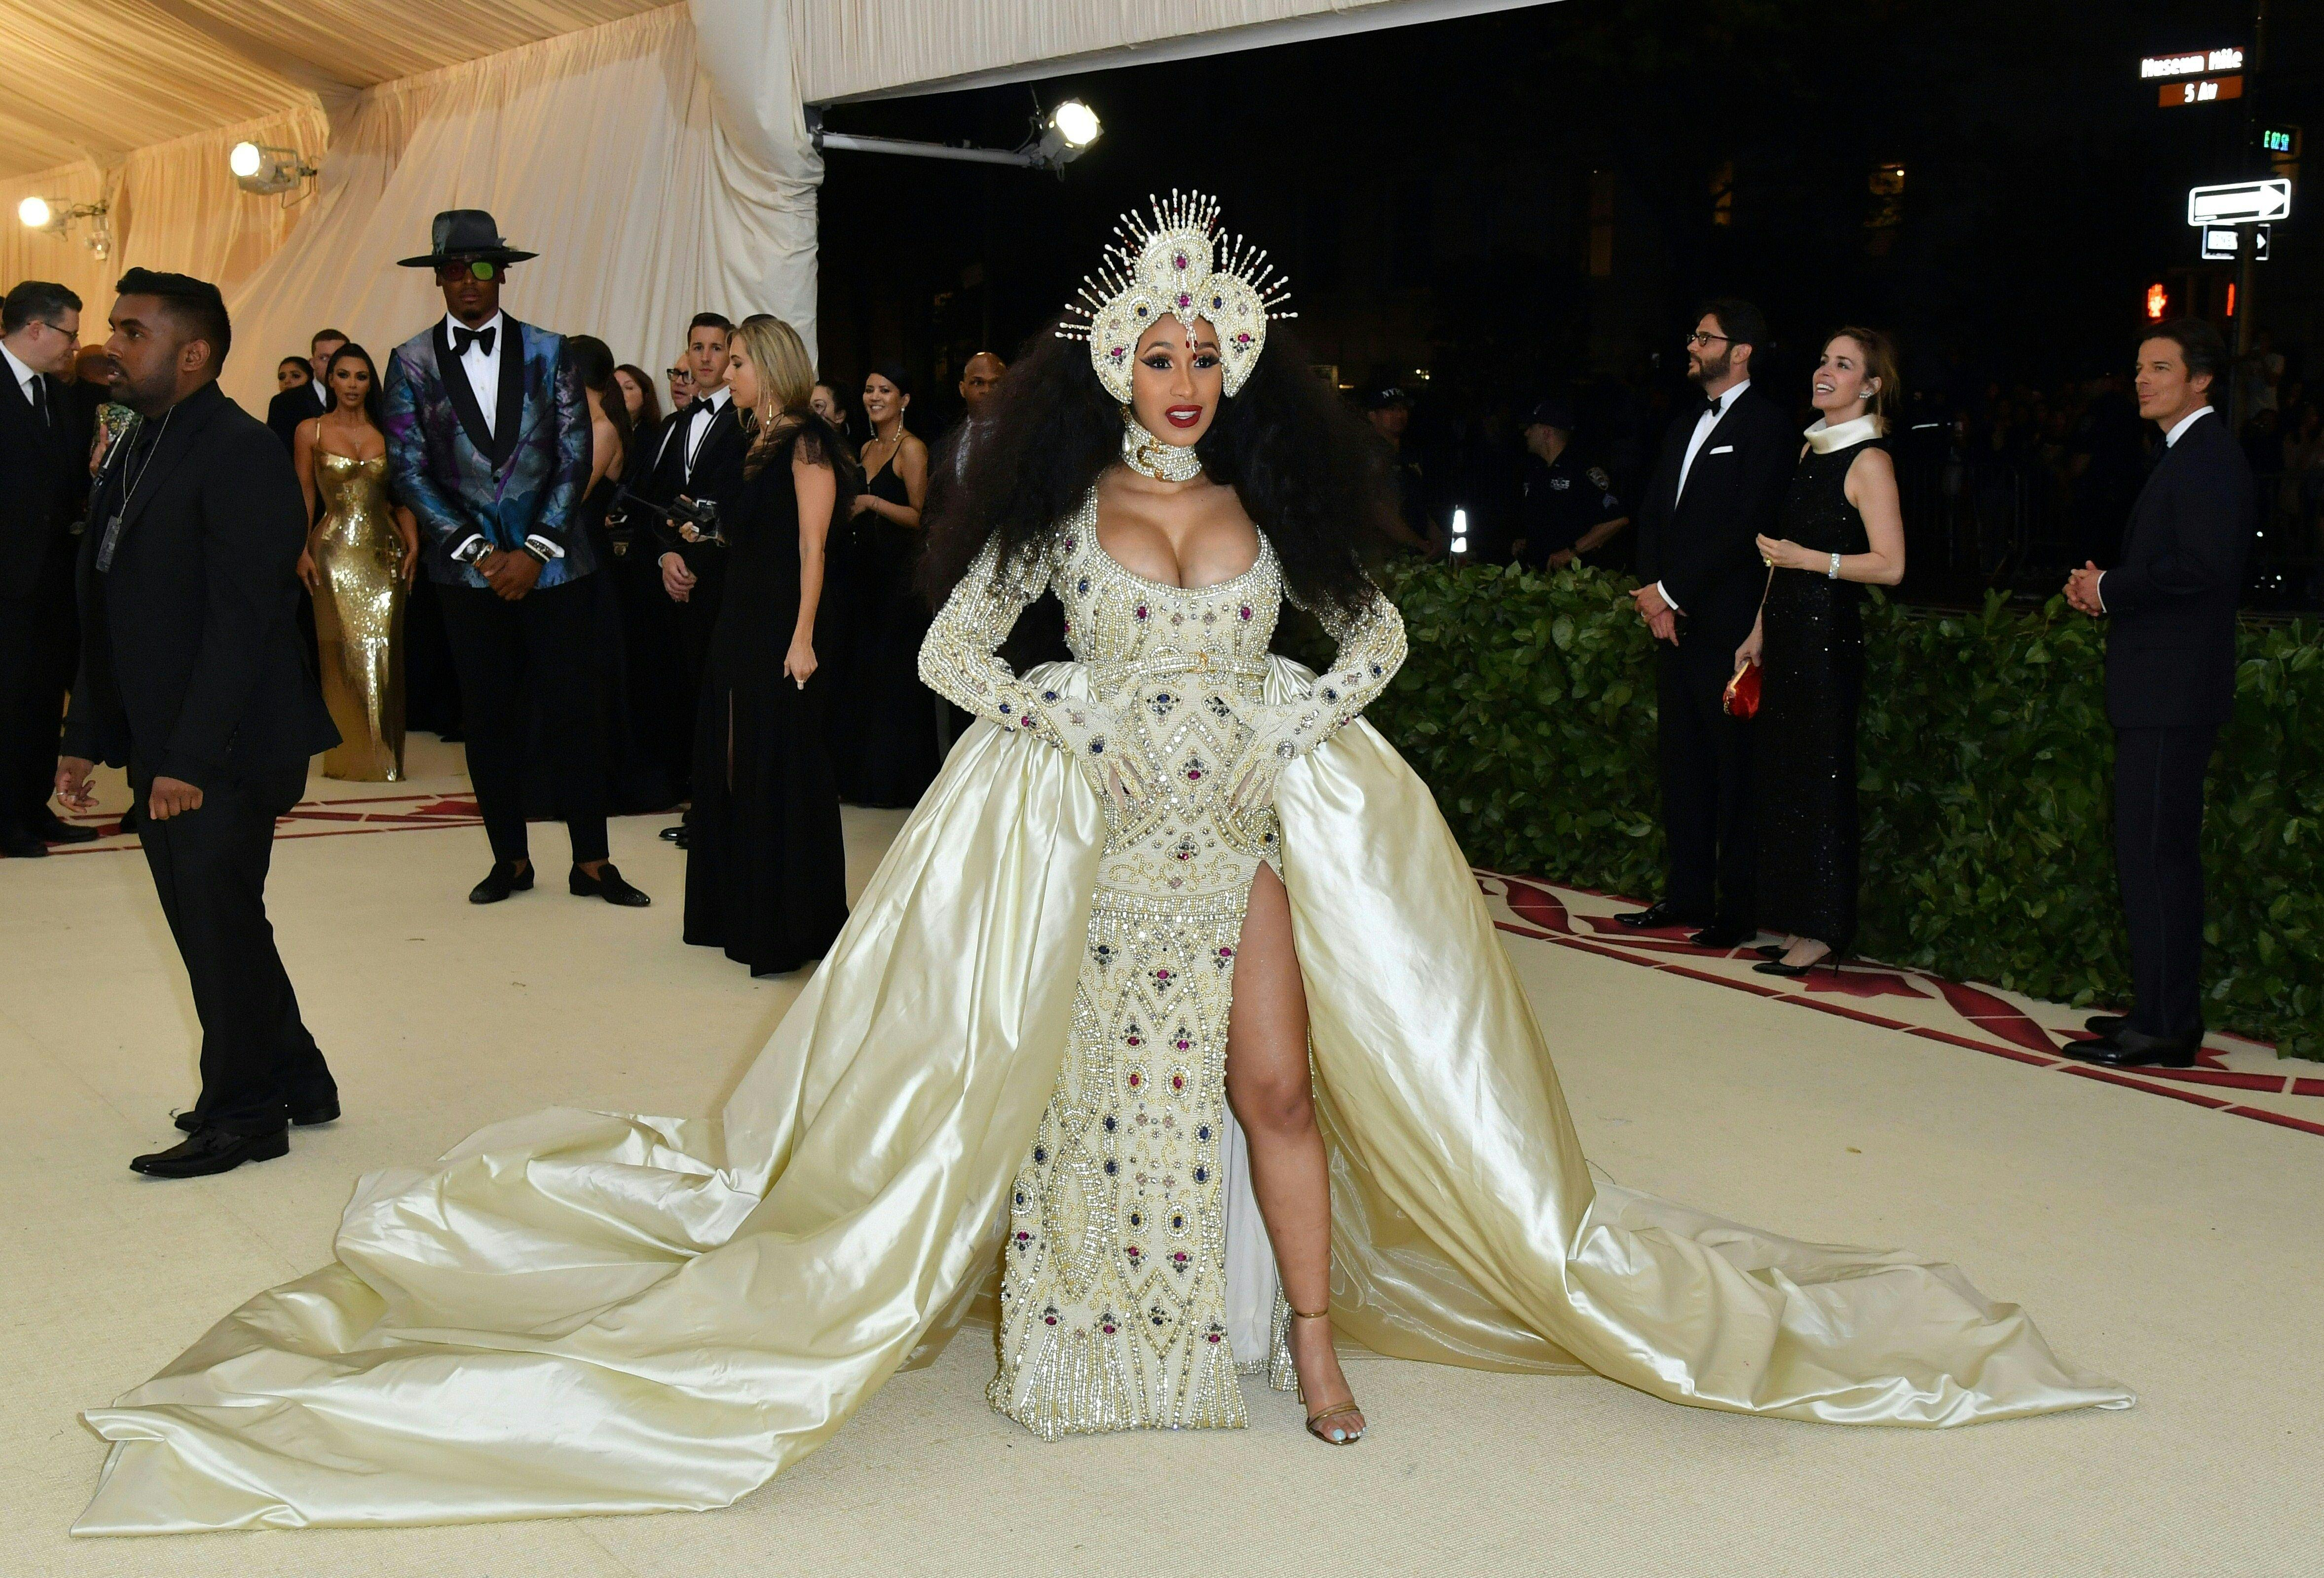 Cardi B arrives for the 2018 Met Gala on May 7, 2018, at the Metropolitan Museum of Art in New York. - The Gala raises money for the Metropolitan Museum of Arts Costume Institute. The Gala's 2018 theme is Heavenly Bodies: Fashion and the Catholic Imagination. (Photo by Angela WEISS / AFP)        (Photo credit should read ANGELA WEISS/AFP/Getty Images)